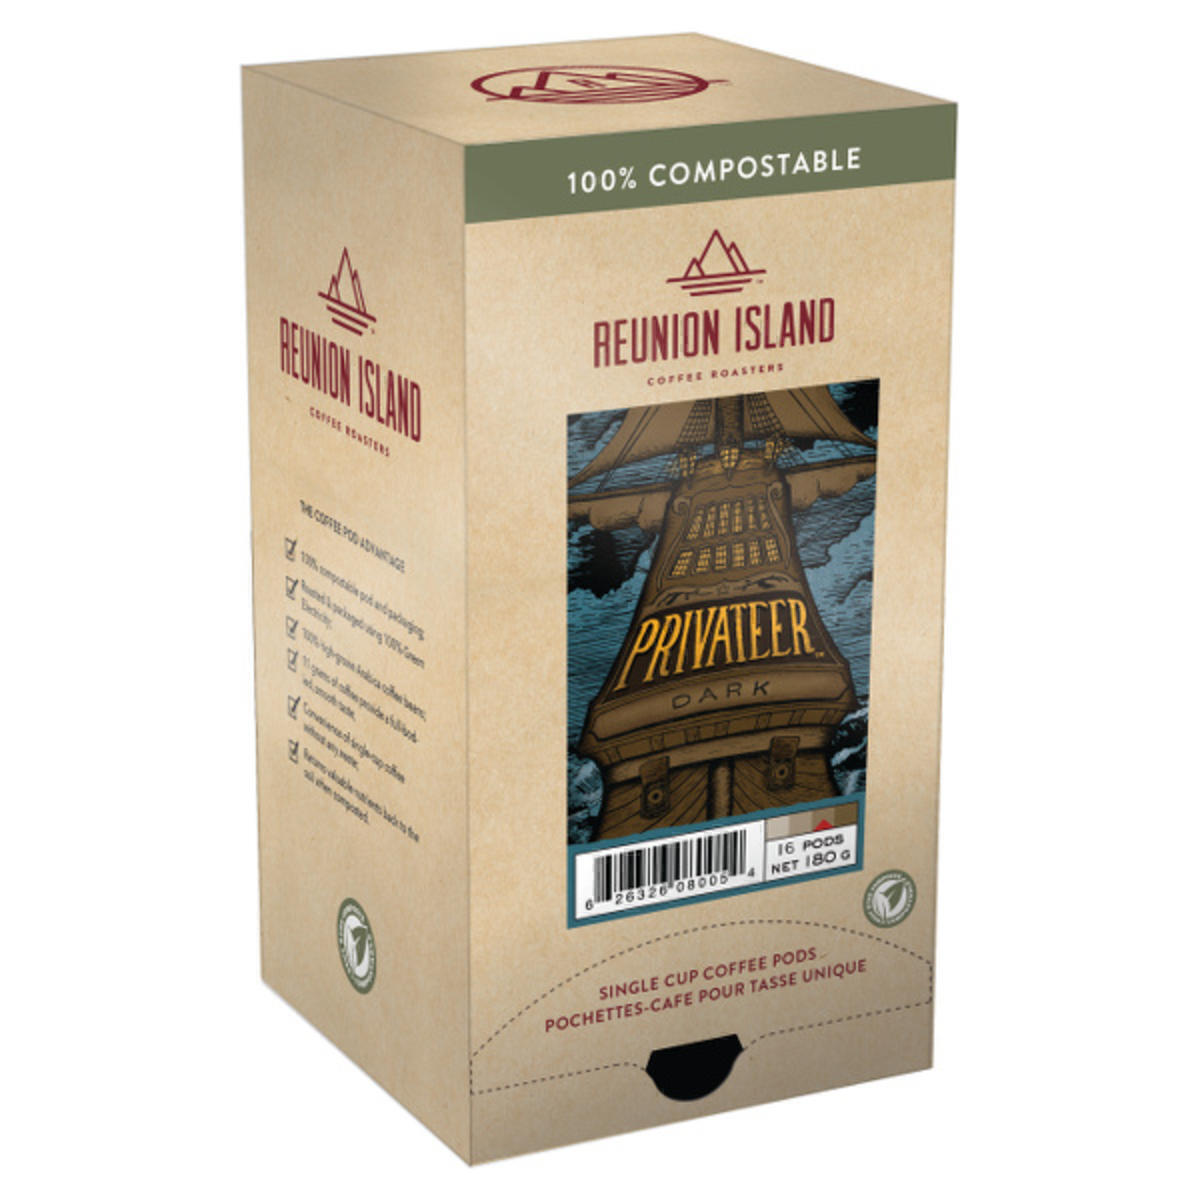 PRIVATEER DARK COFFEE POD